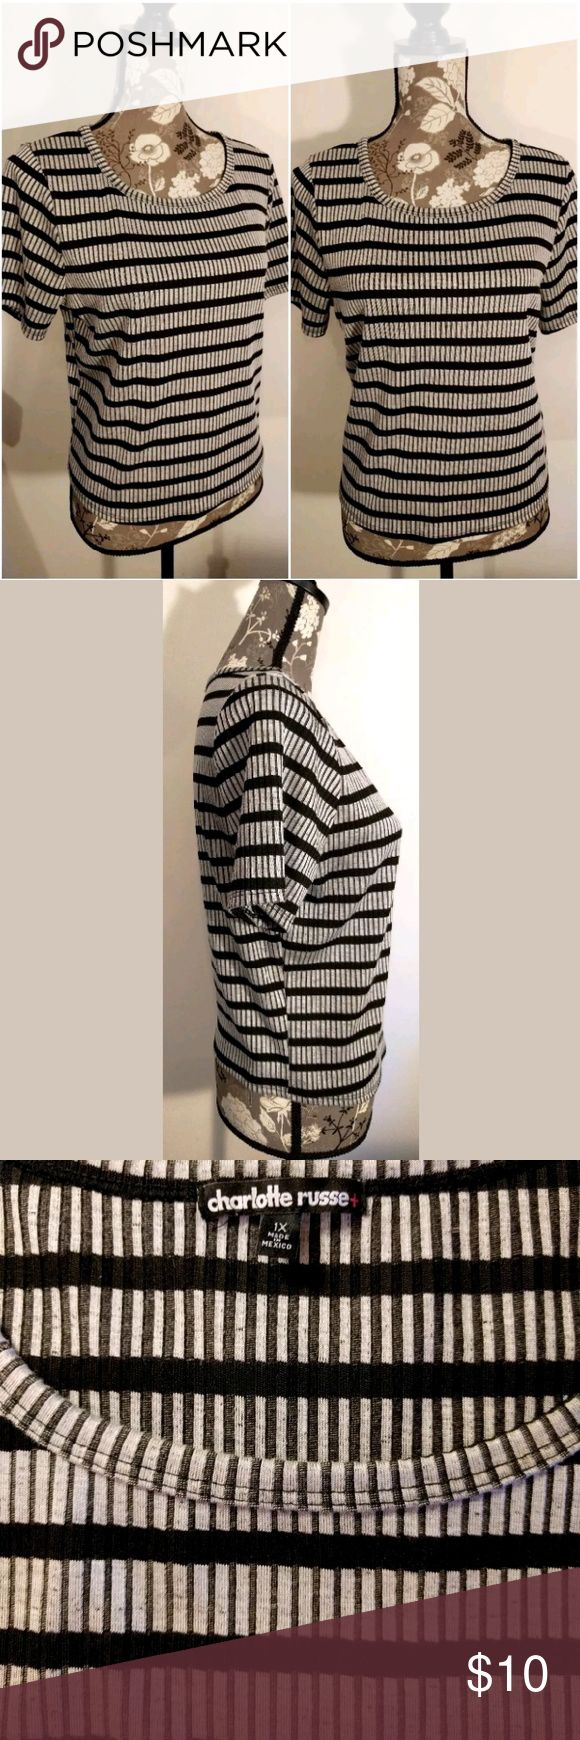 Charlotte Russe Striped Top or Shirt  Short Sleeve Charlotte Russe Top or Shirt  Short Sleeve  Stripes Black Gray  Pullover  Plus Size 1X  Nice Career Piece with Black Slacks or Capris and a Sweater/Blazer  SMOKE FREE HOME Charlotte Russe Tops